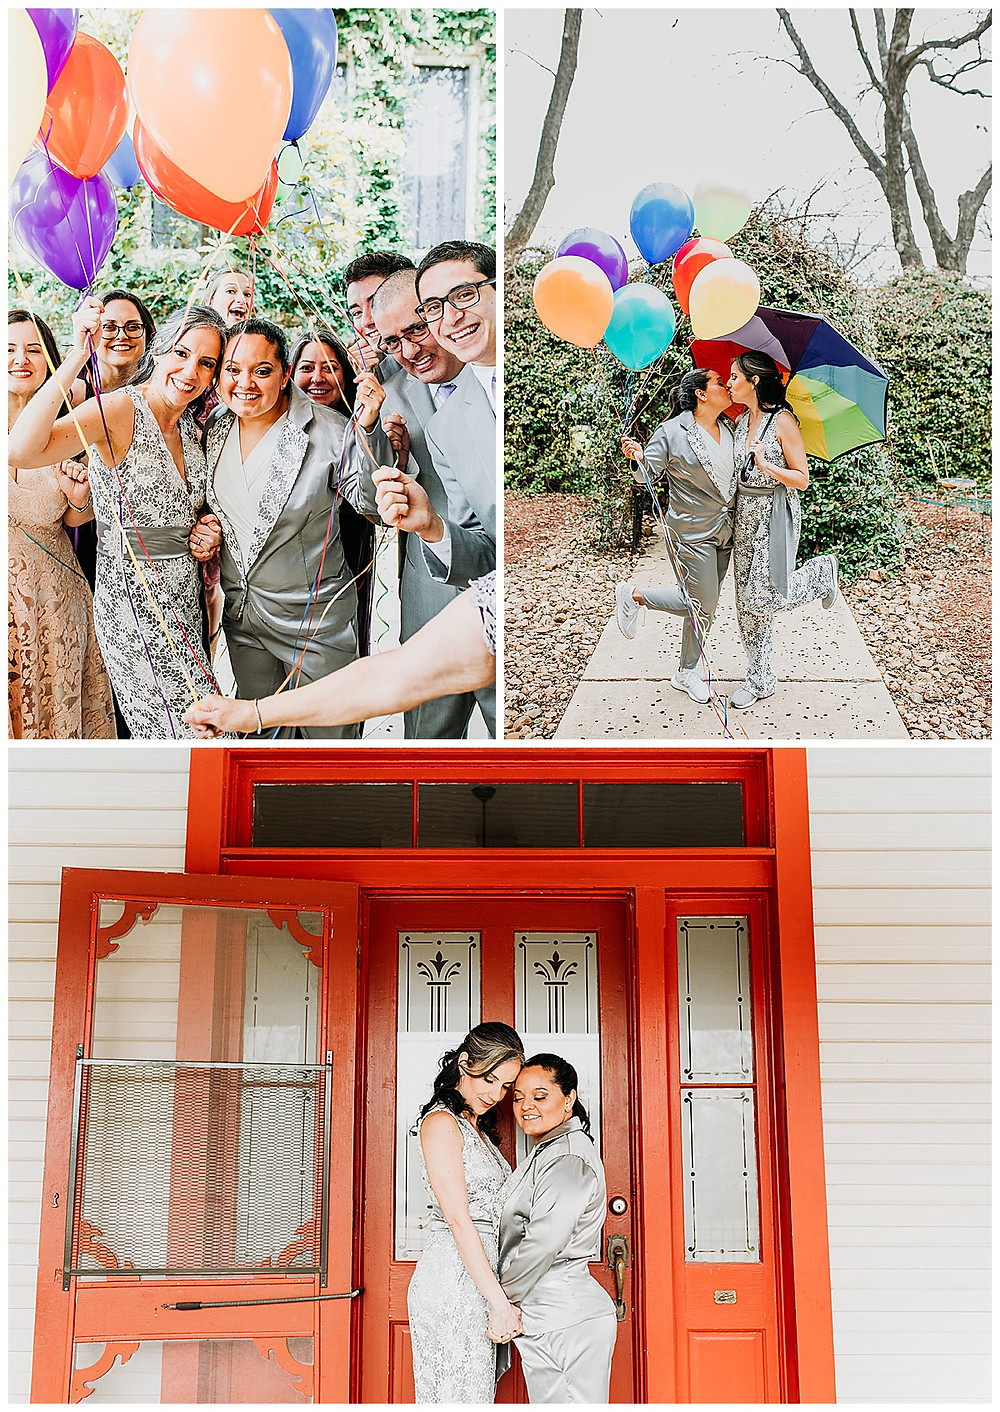 Lesbian Wedding | Boerne Wedding | Boerne Wedding Planner | Same Sex Wedding | Spinelli's Venue | Two Brides | Rainbow